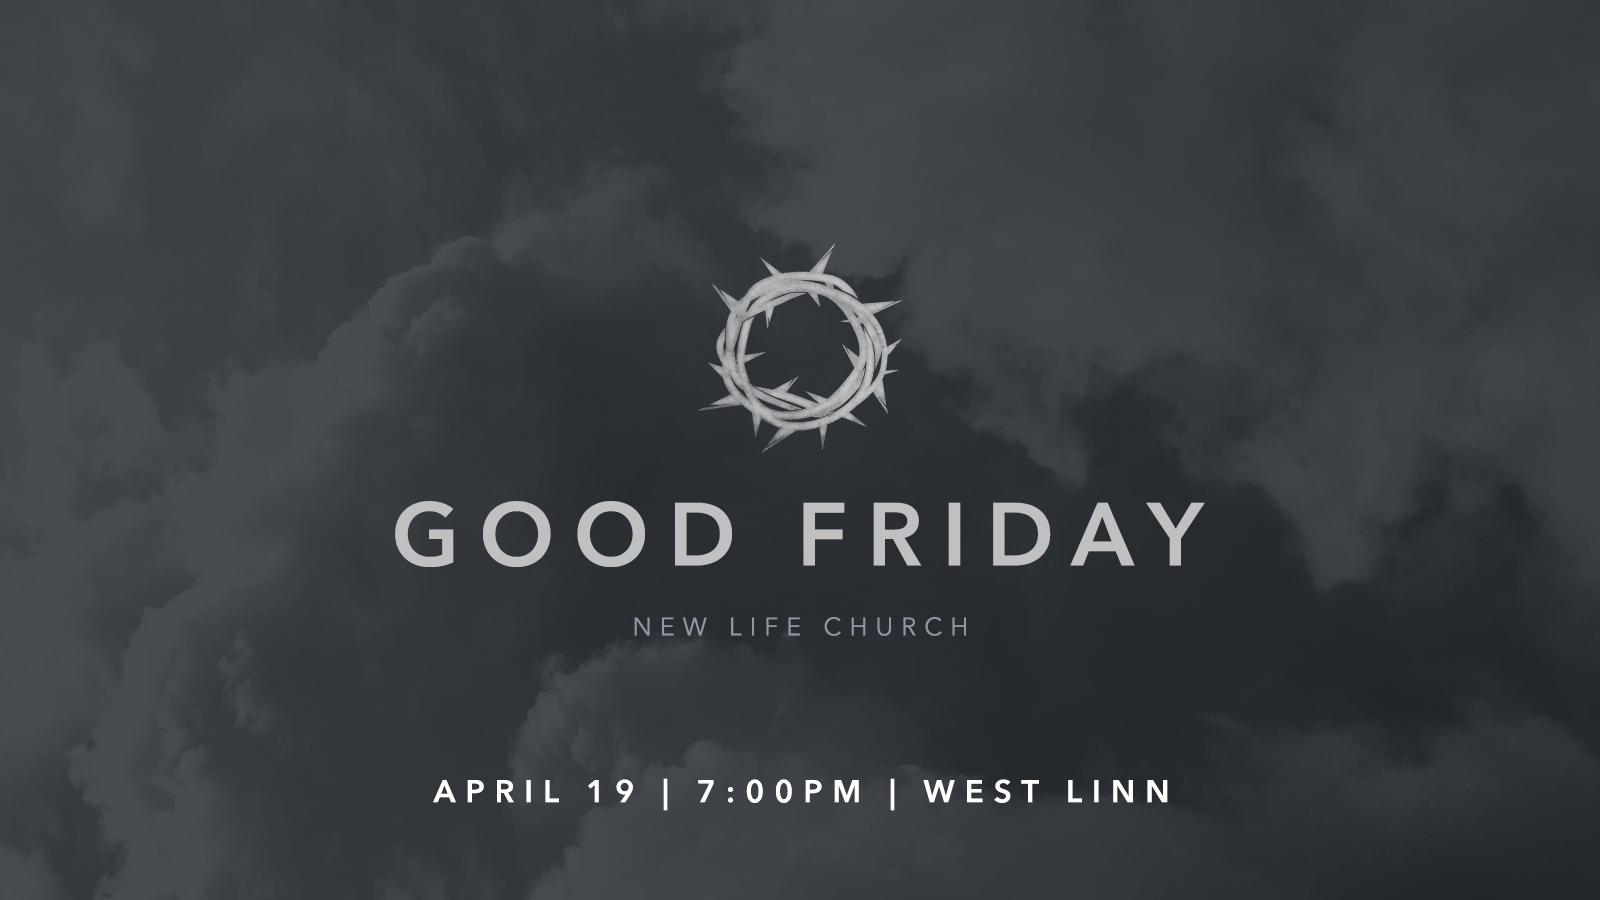 Good Friday 19 Invitation.jpg